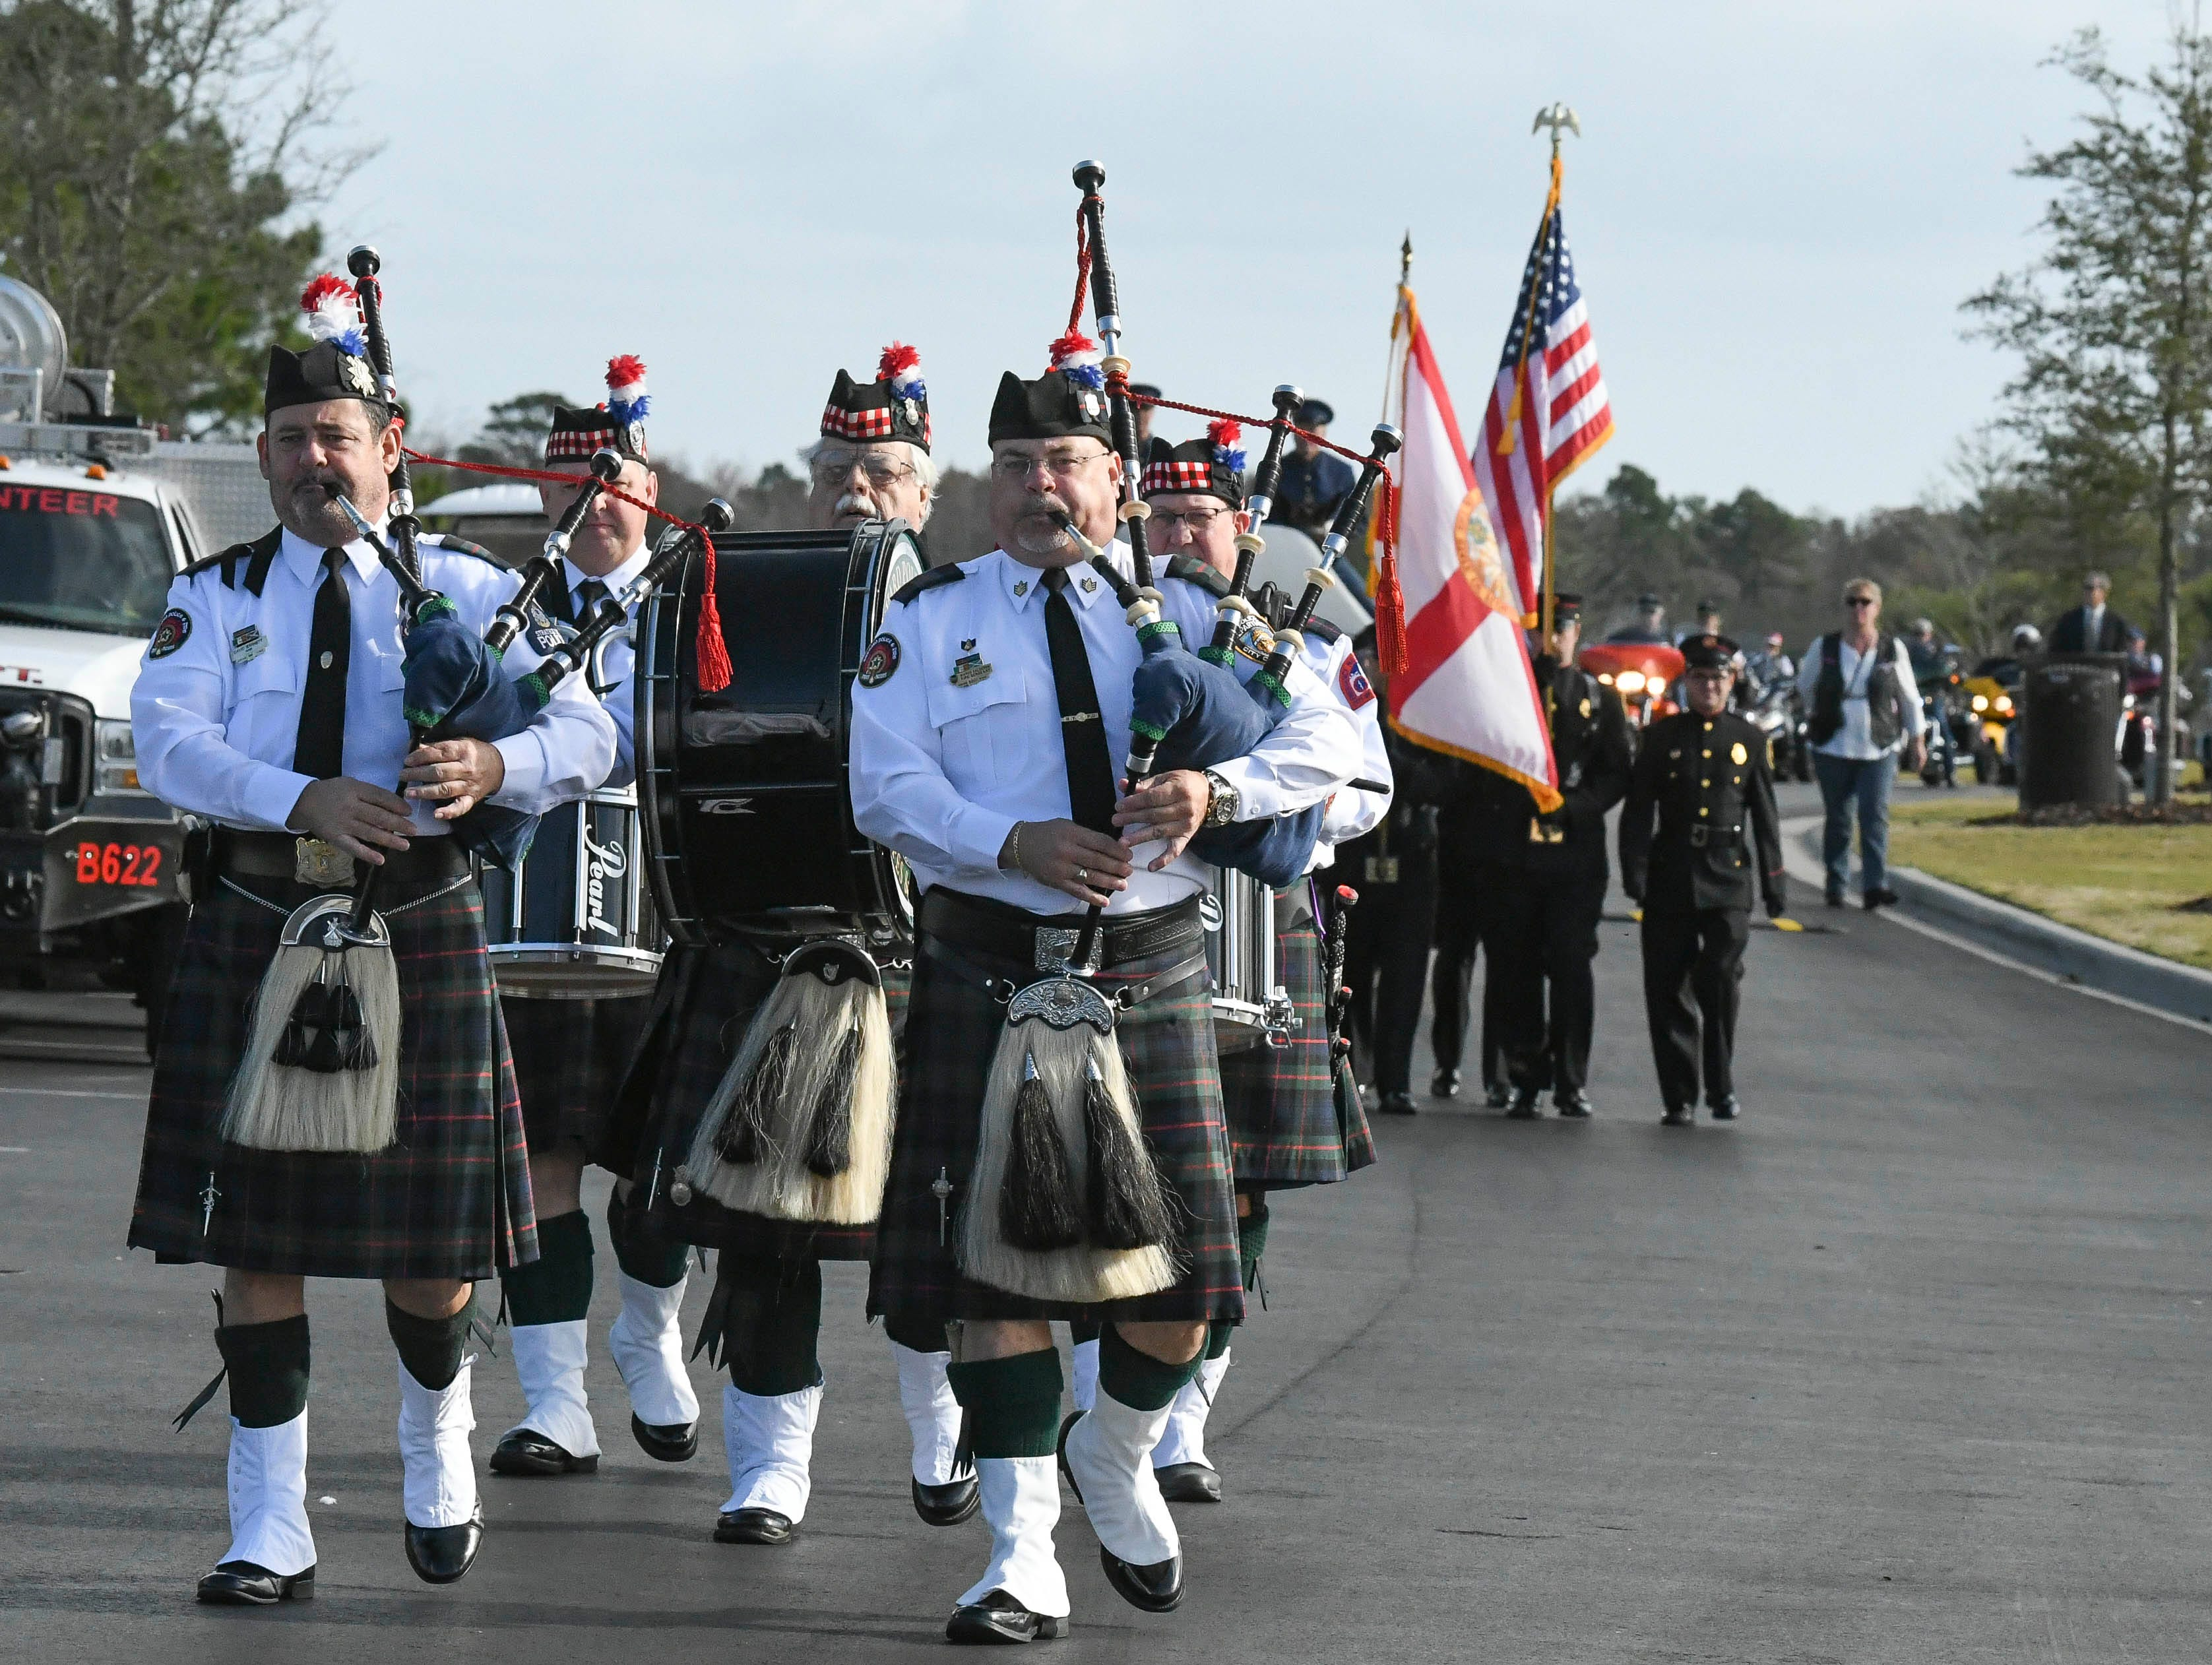 The Brevard Police and Fire Pipes and Drums Band leads the way as the ashes of 19 veterans and six spouses are laid to rest in a ceremony Saturday lat Cape Canaveral National Cemetery. The Missing in America Project heads up the effort to locate and inter the unclaimed cremains of veterans throughout the country.